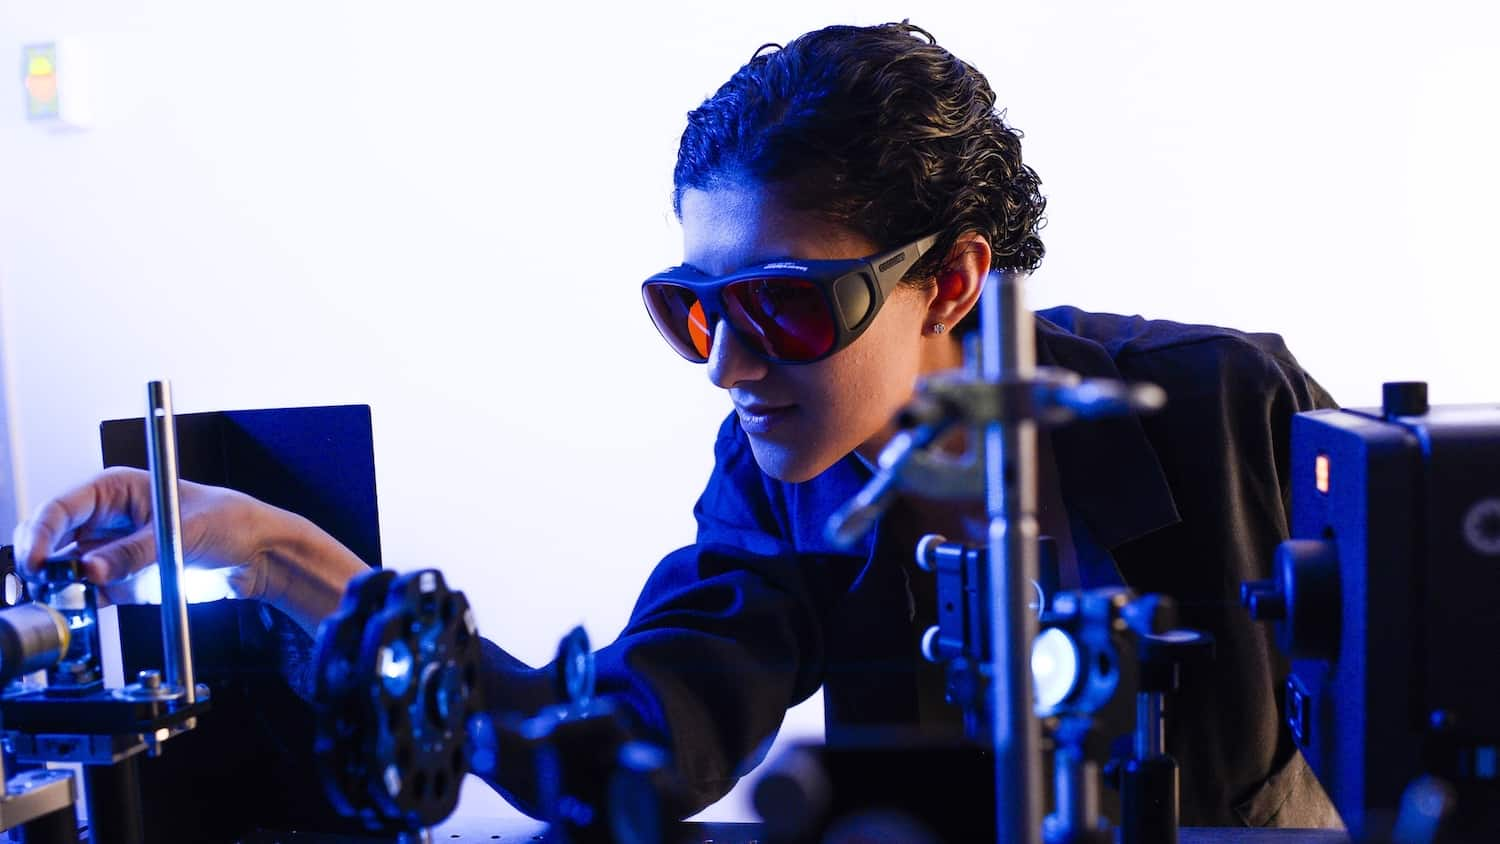 A female student in lab goggles examines a piece of photochemistry equipment